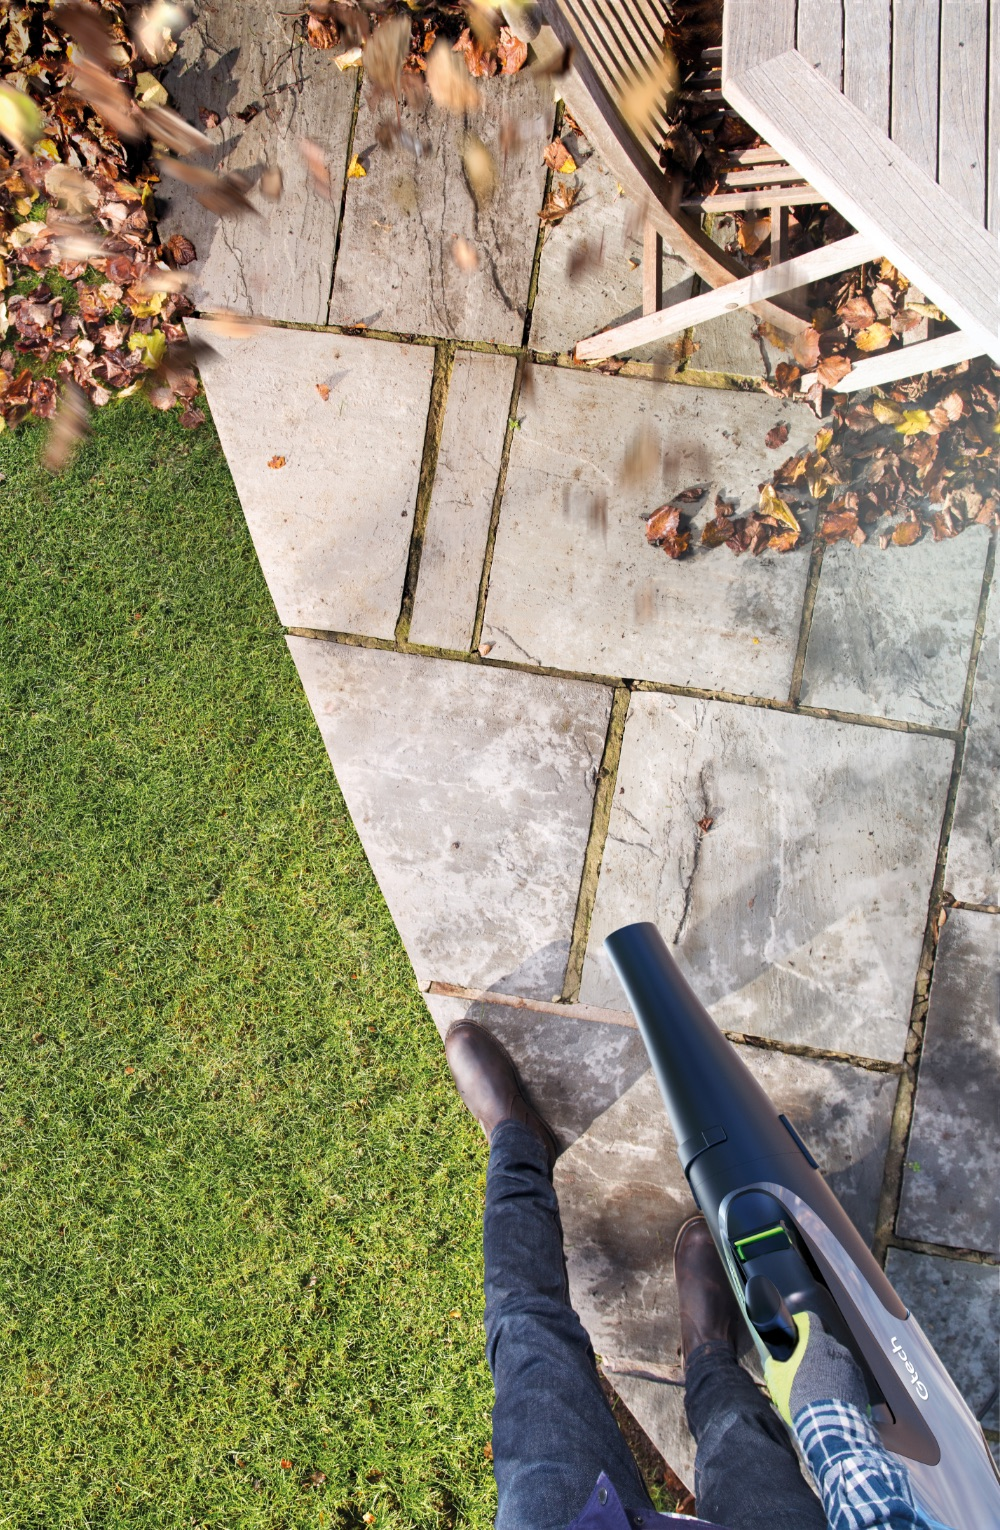 Cordless leafblower blowing away leaves